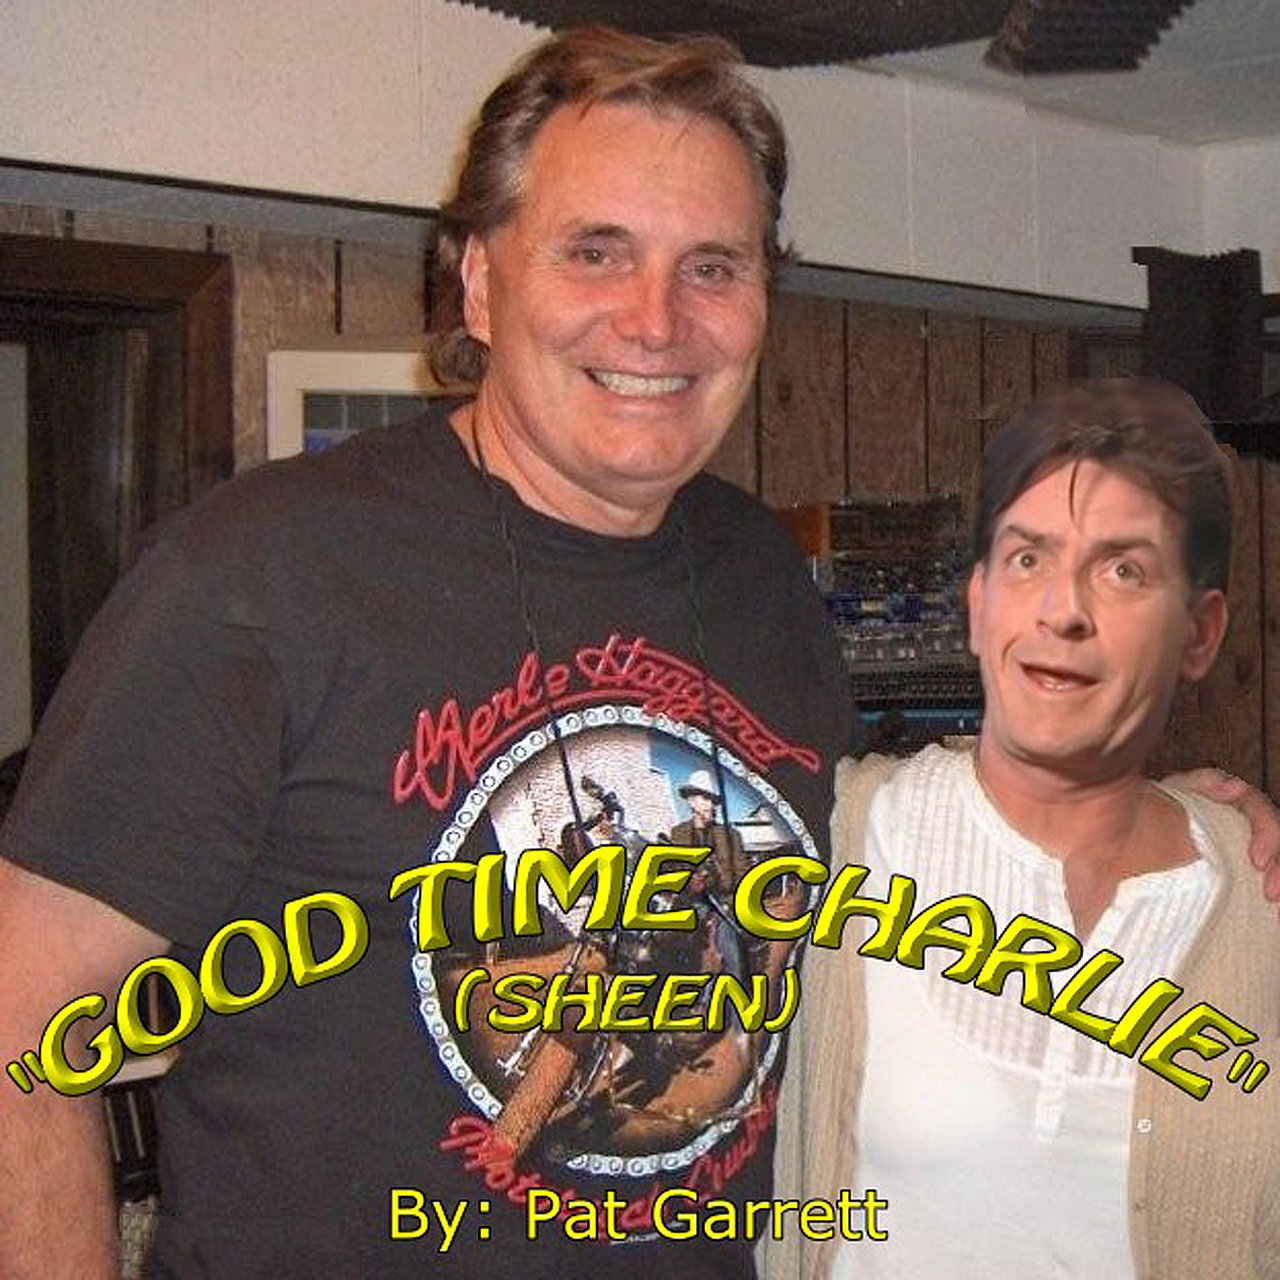 Good Time Charlie (Sheen)